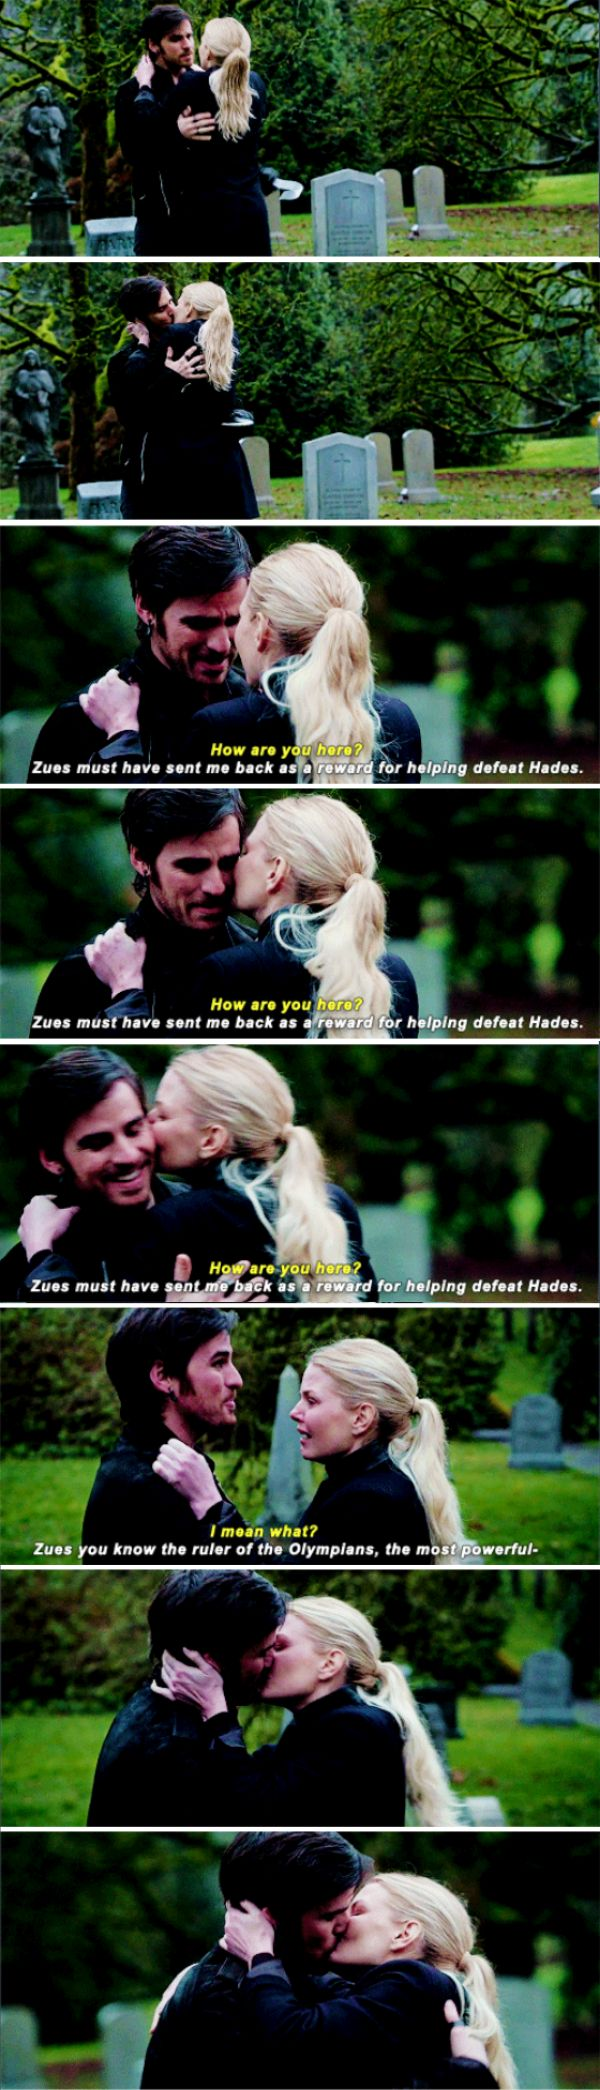 """Zeus must have send me back as a reward for helping defeat Hades"" - Killian and Emma #OnceUponATime ((YAY!!!))"